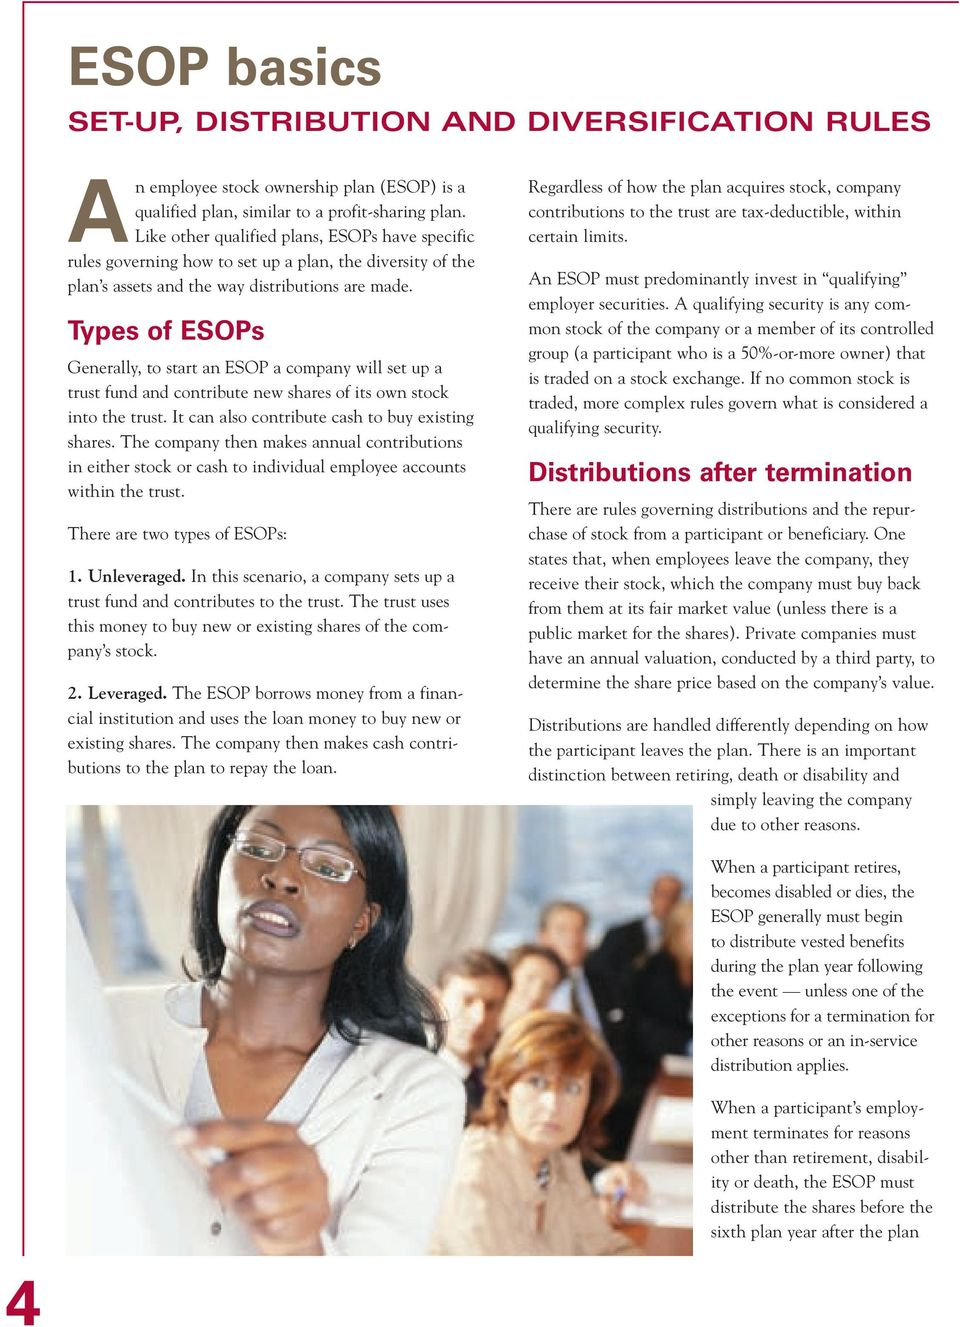 Types of ESOPs Generally, to start an ESOP a company will set up a trust fund and contribute new shares of its own stock into the trust. It can also contribute cash to buy existing shares.